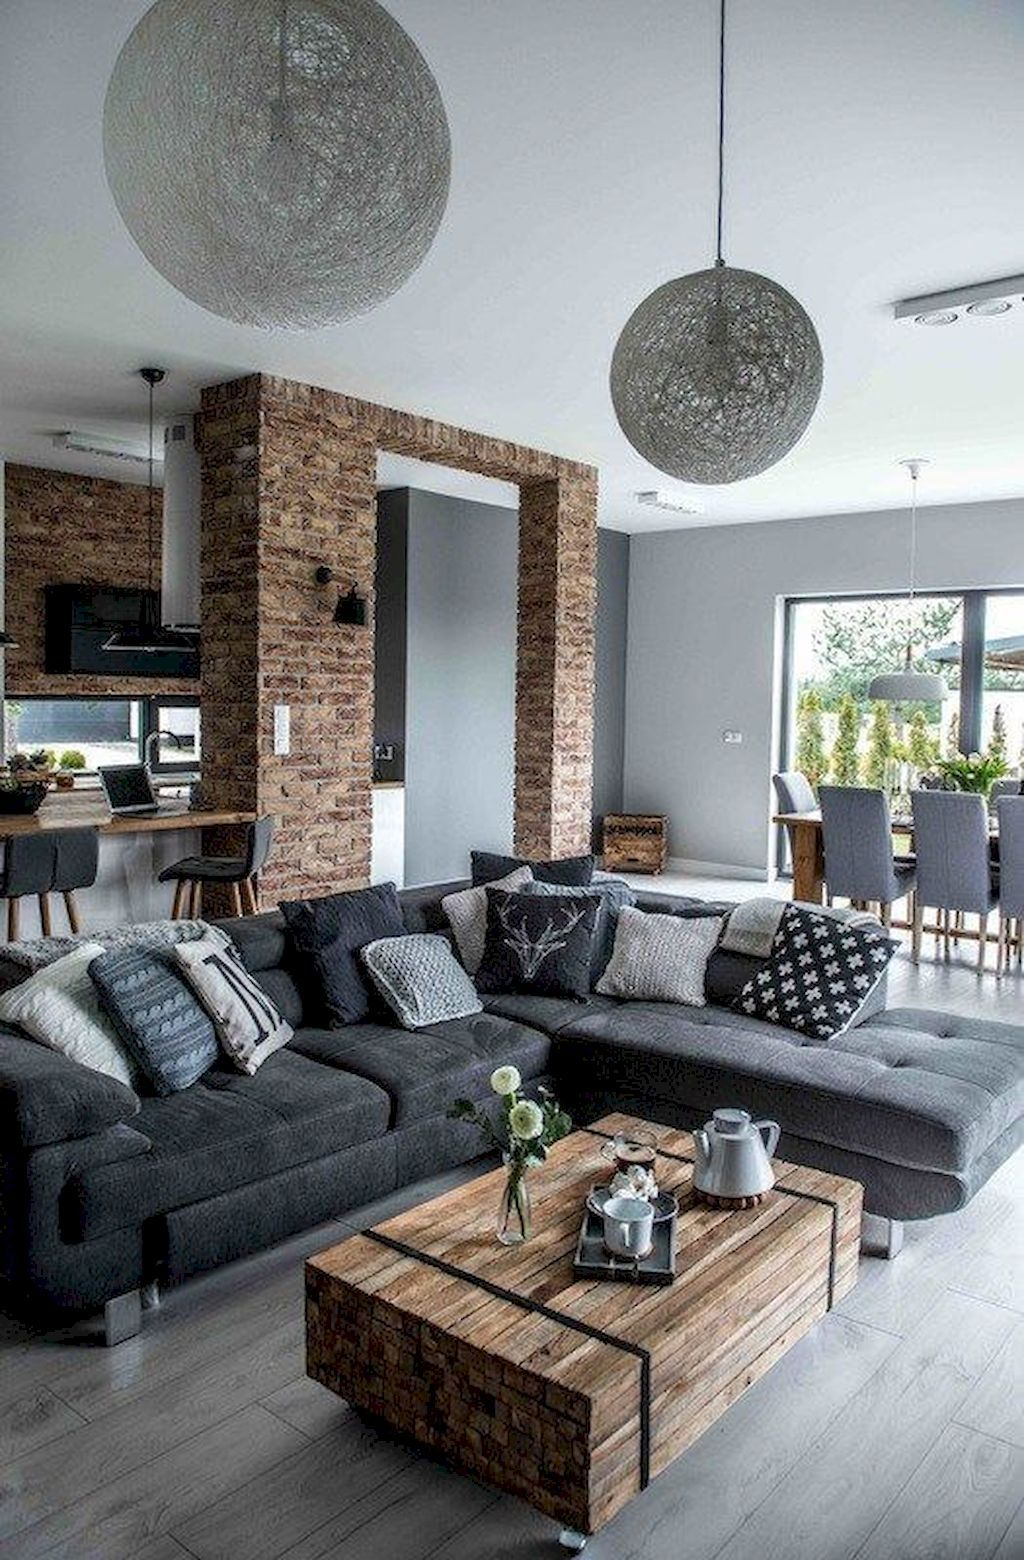 Cool 50 best rustic apartment living room decor ideas and makeover https coachdecor